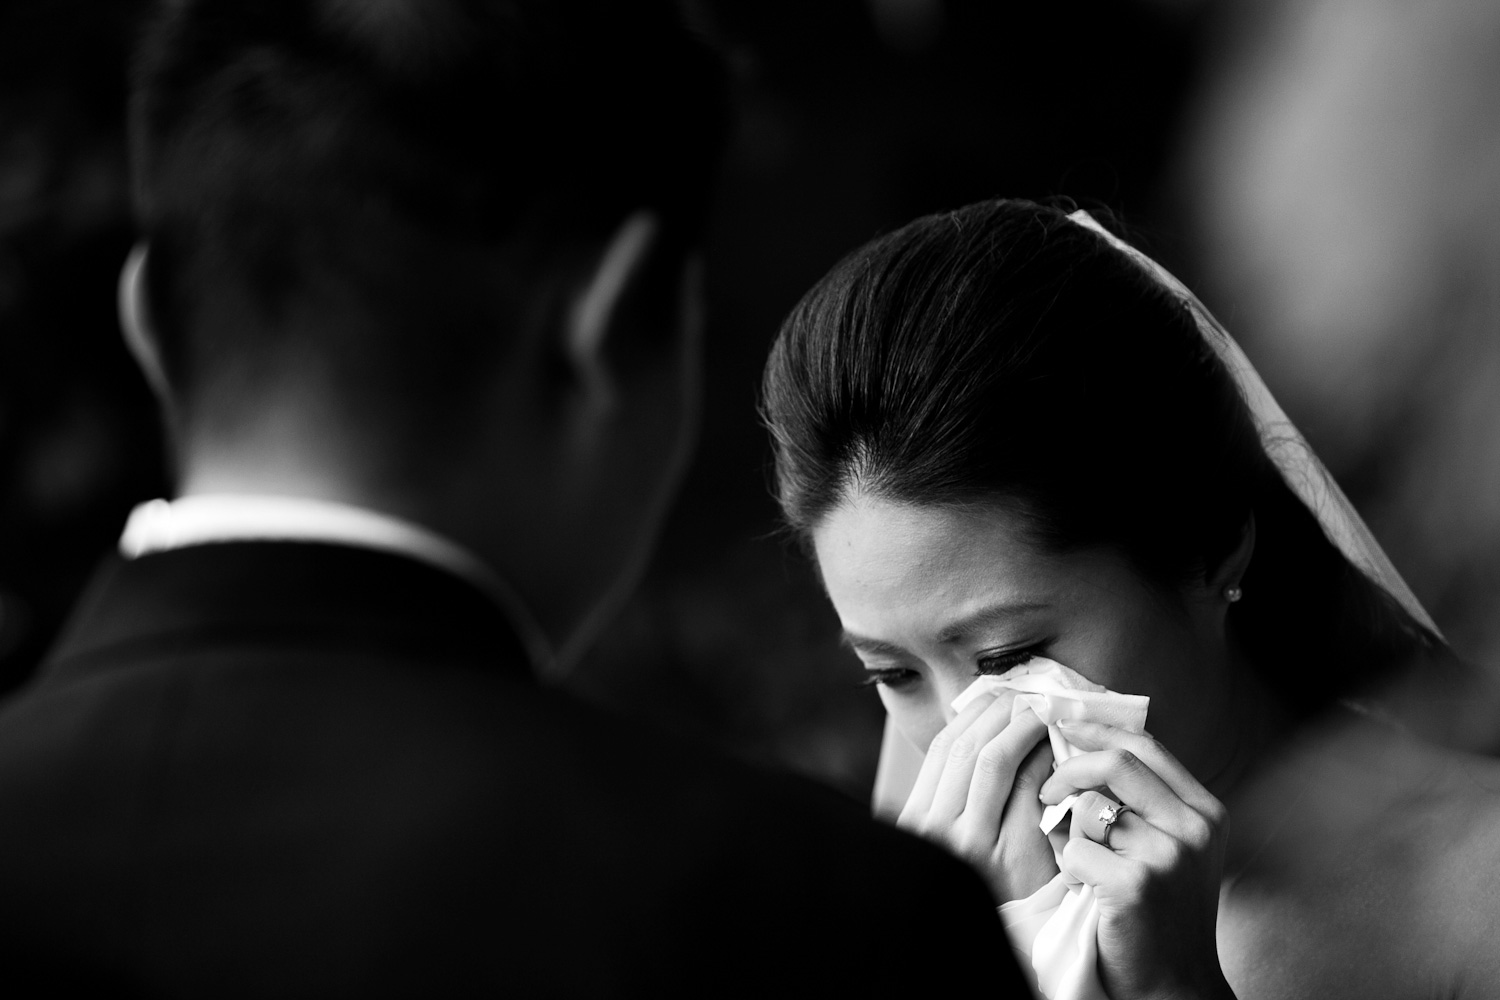 An emotional bride wipes a tear from her eye during her wedding at Wine and Roses in Lodi, California.